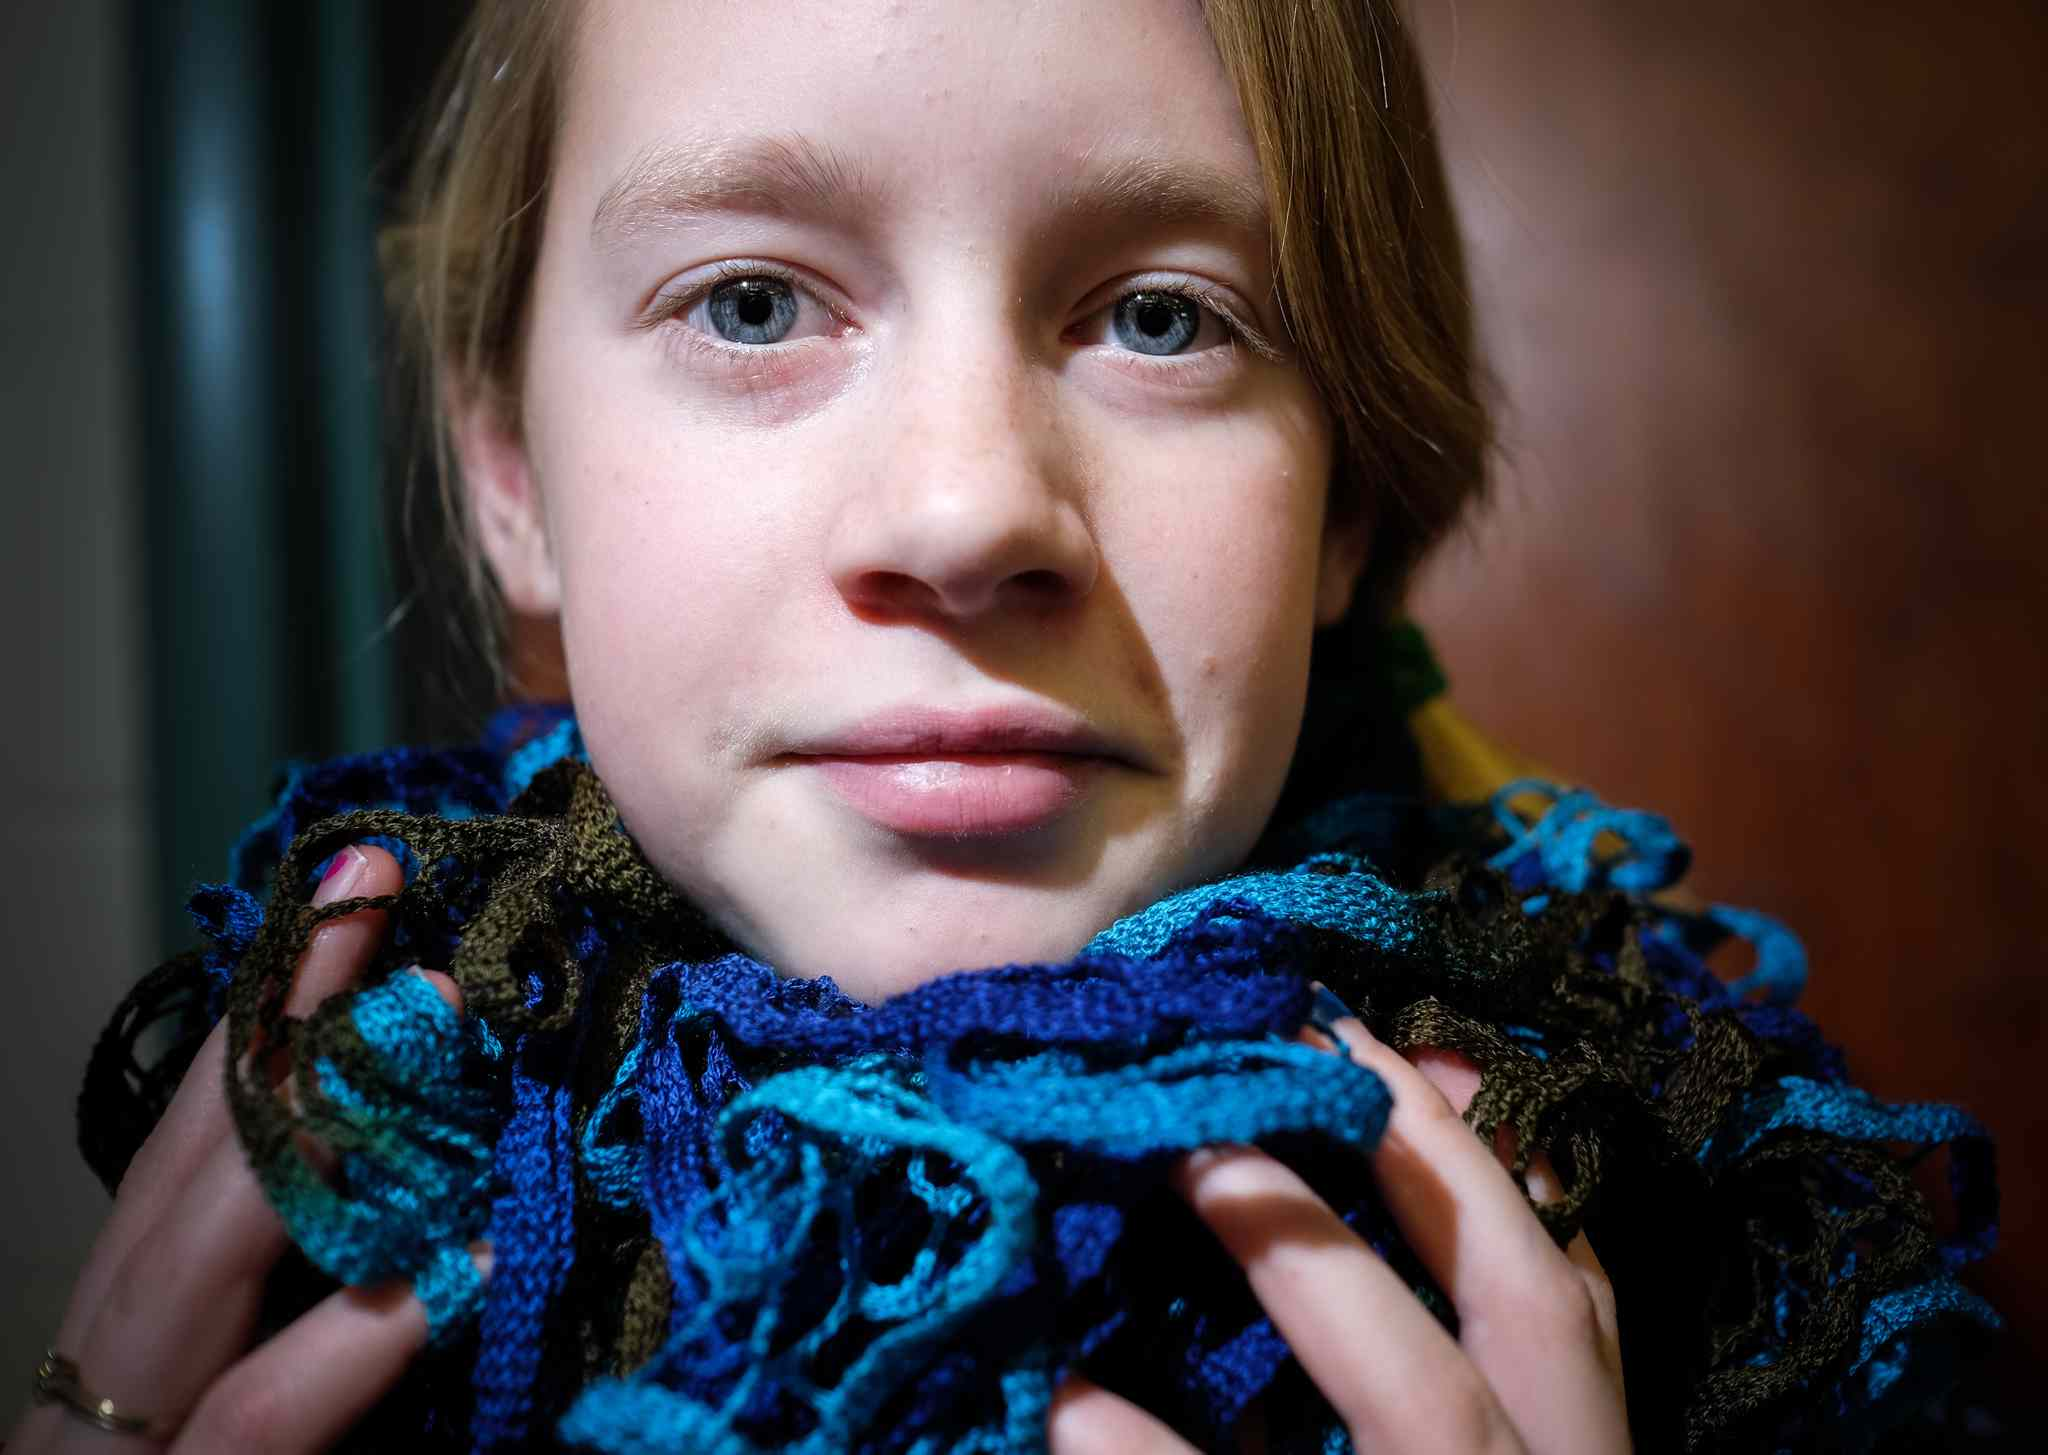 Avrey Murdy, 11, shows off a fancy scarf she knitted in Elaine Owen's class at Miami School, southwest of Winnipeg. The class has donated clothing to shelters and made items for gifts and donations.